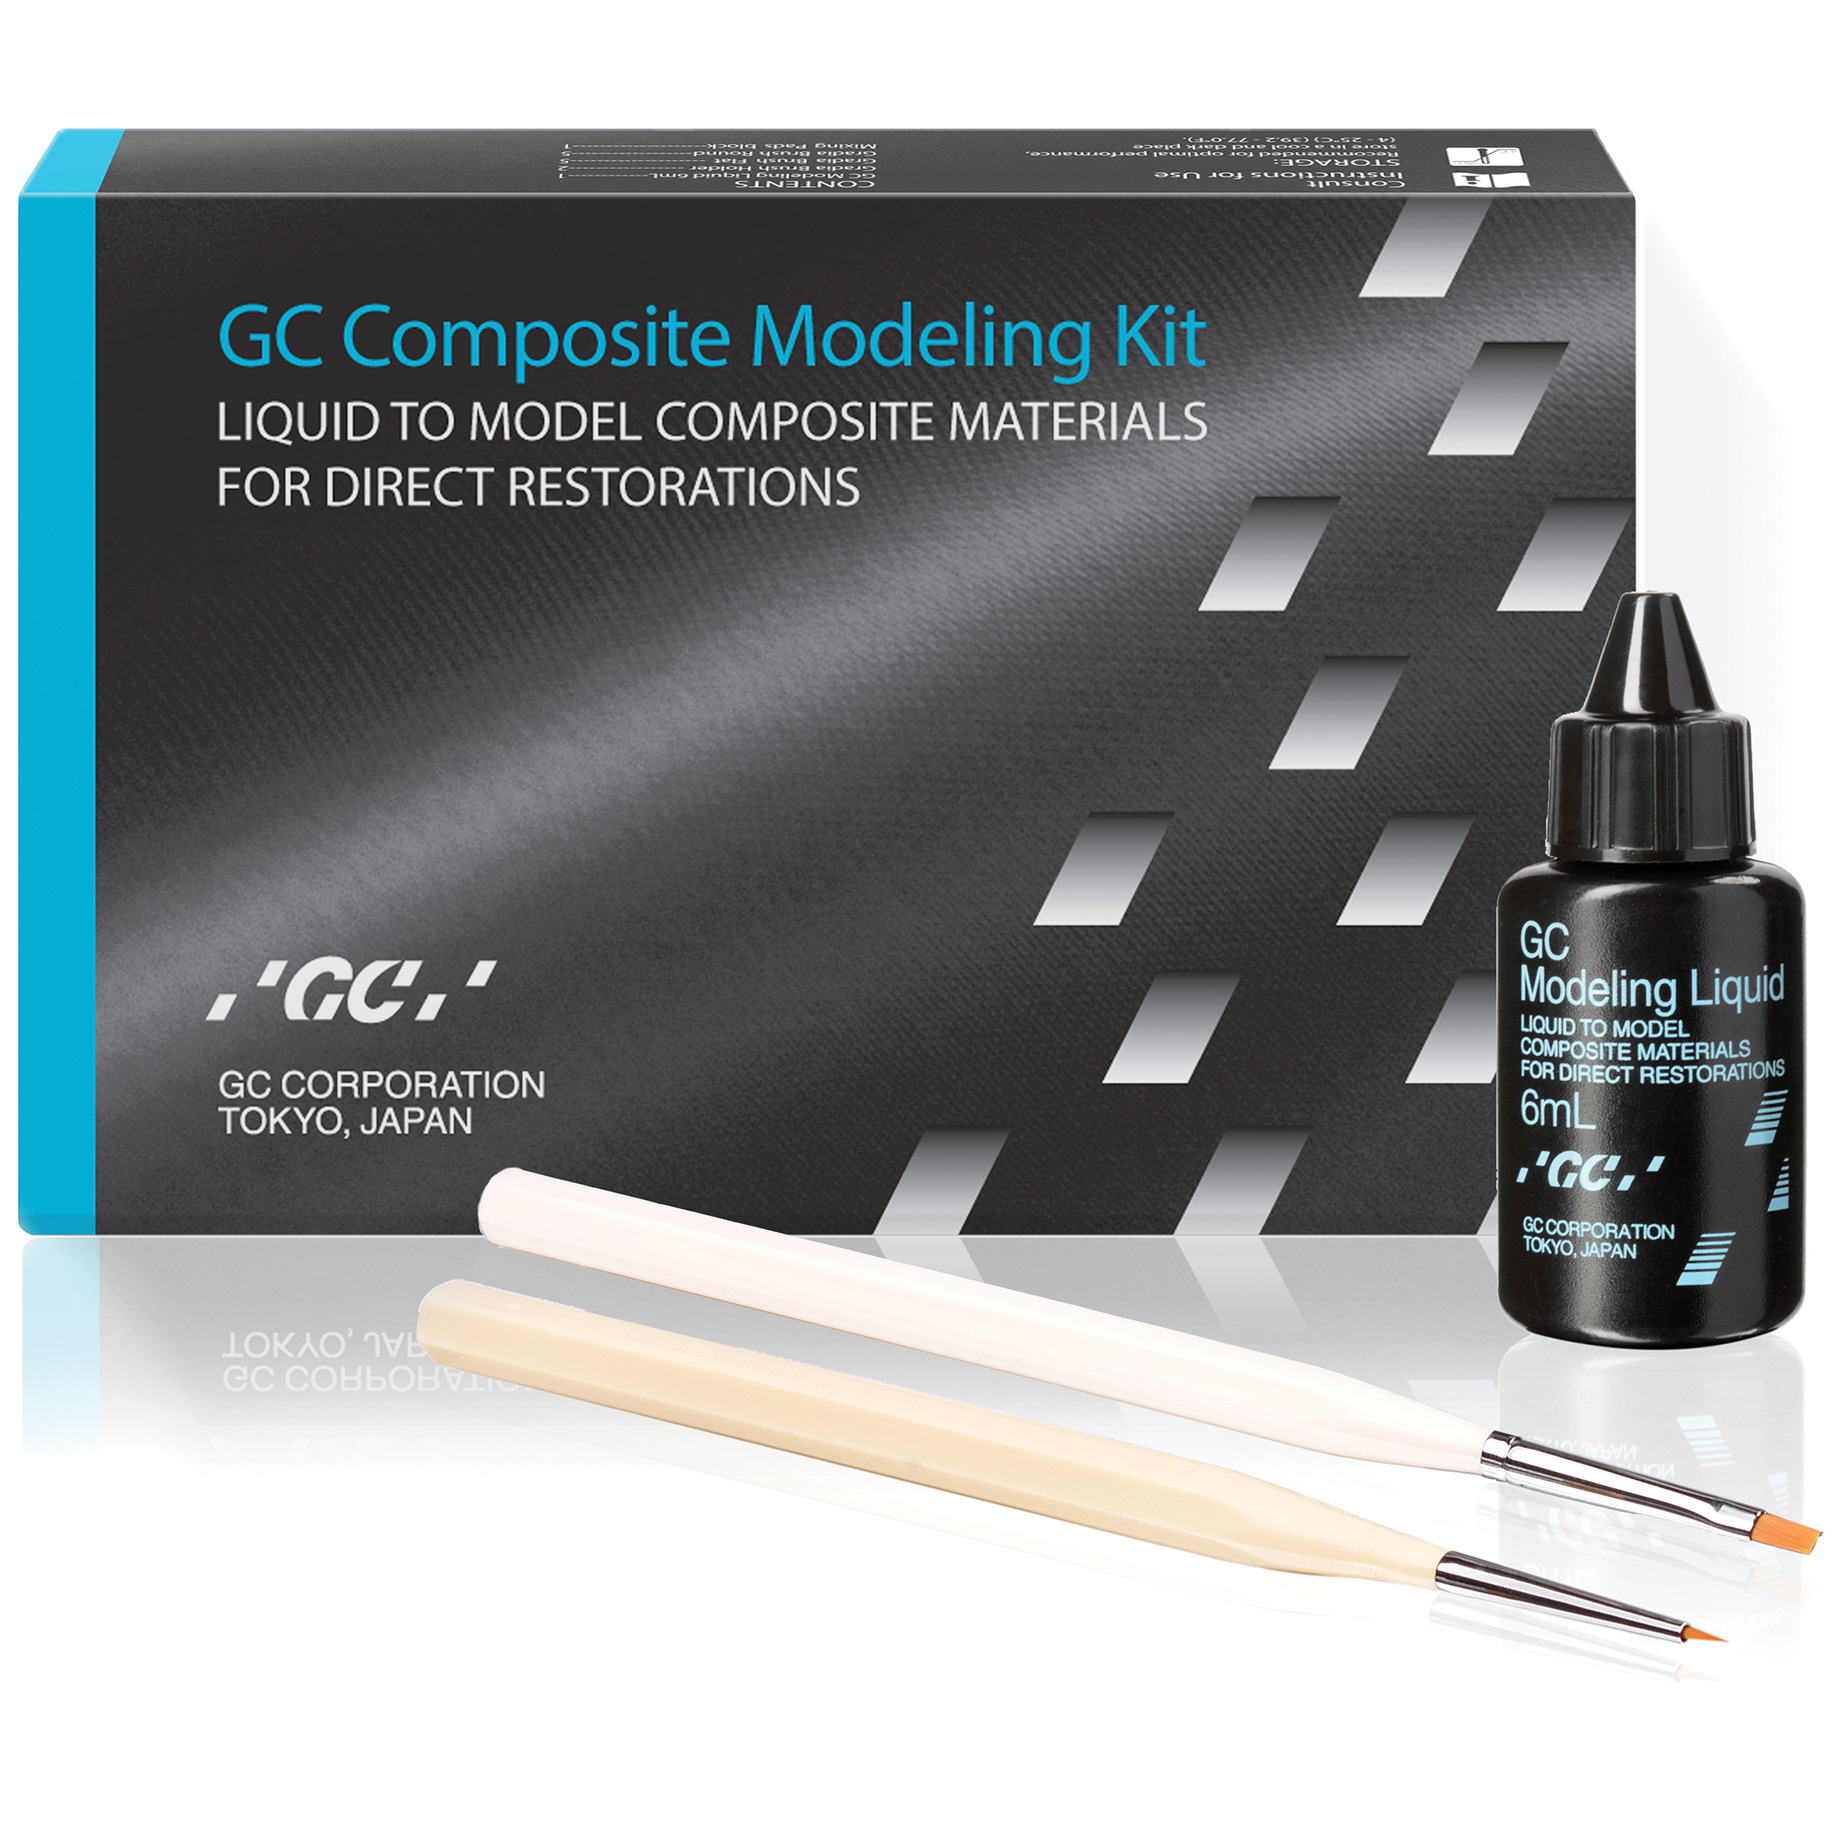 GC Composite Modeling Kit